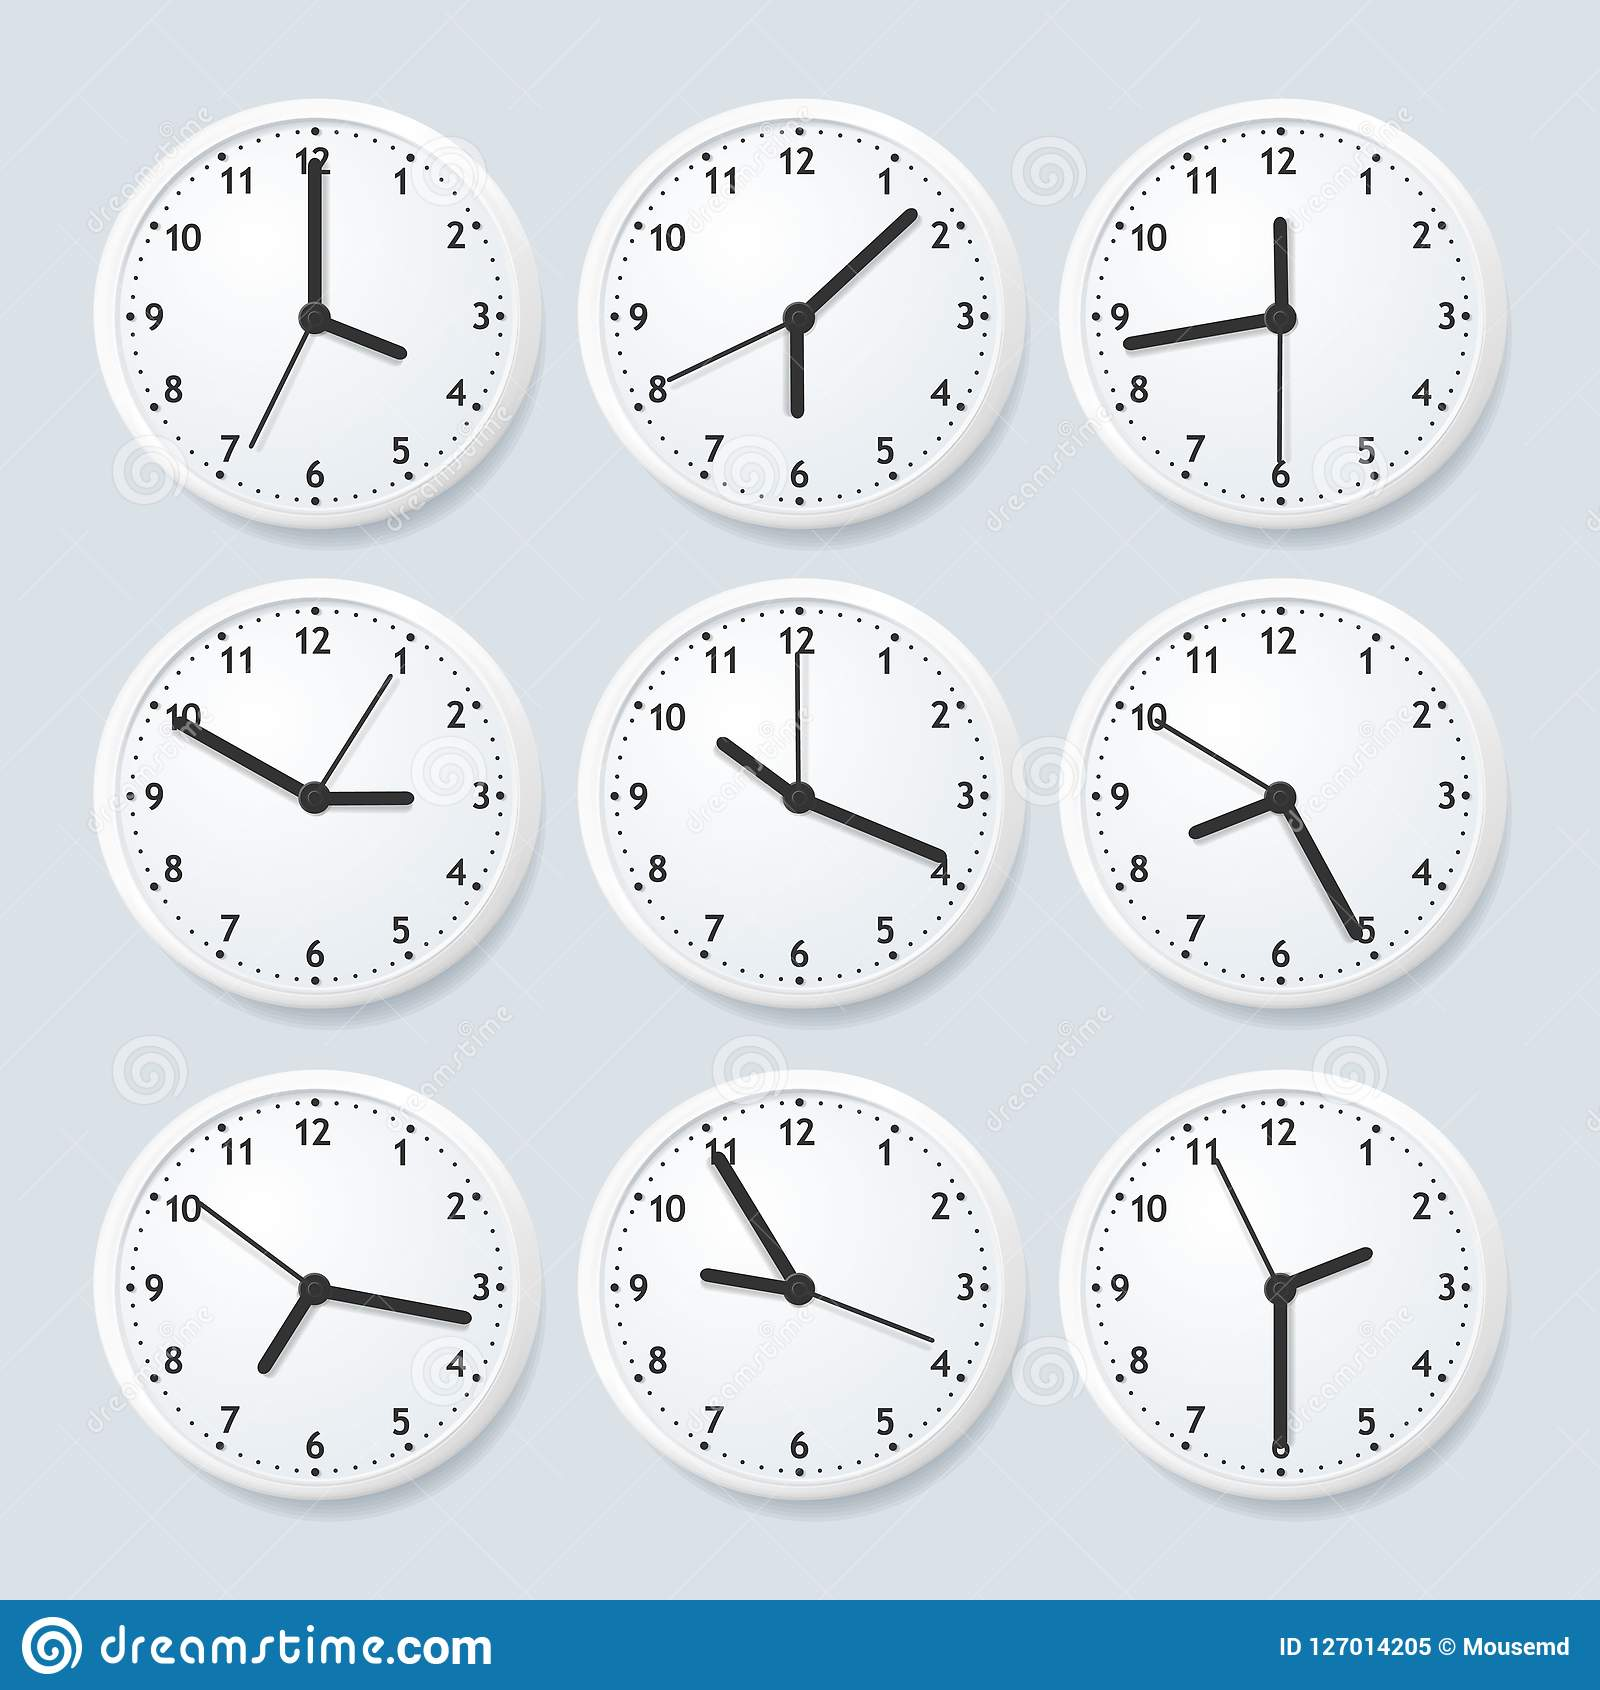 Realistic Detailed 3d Clock Set with Different Time. Vector